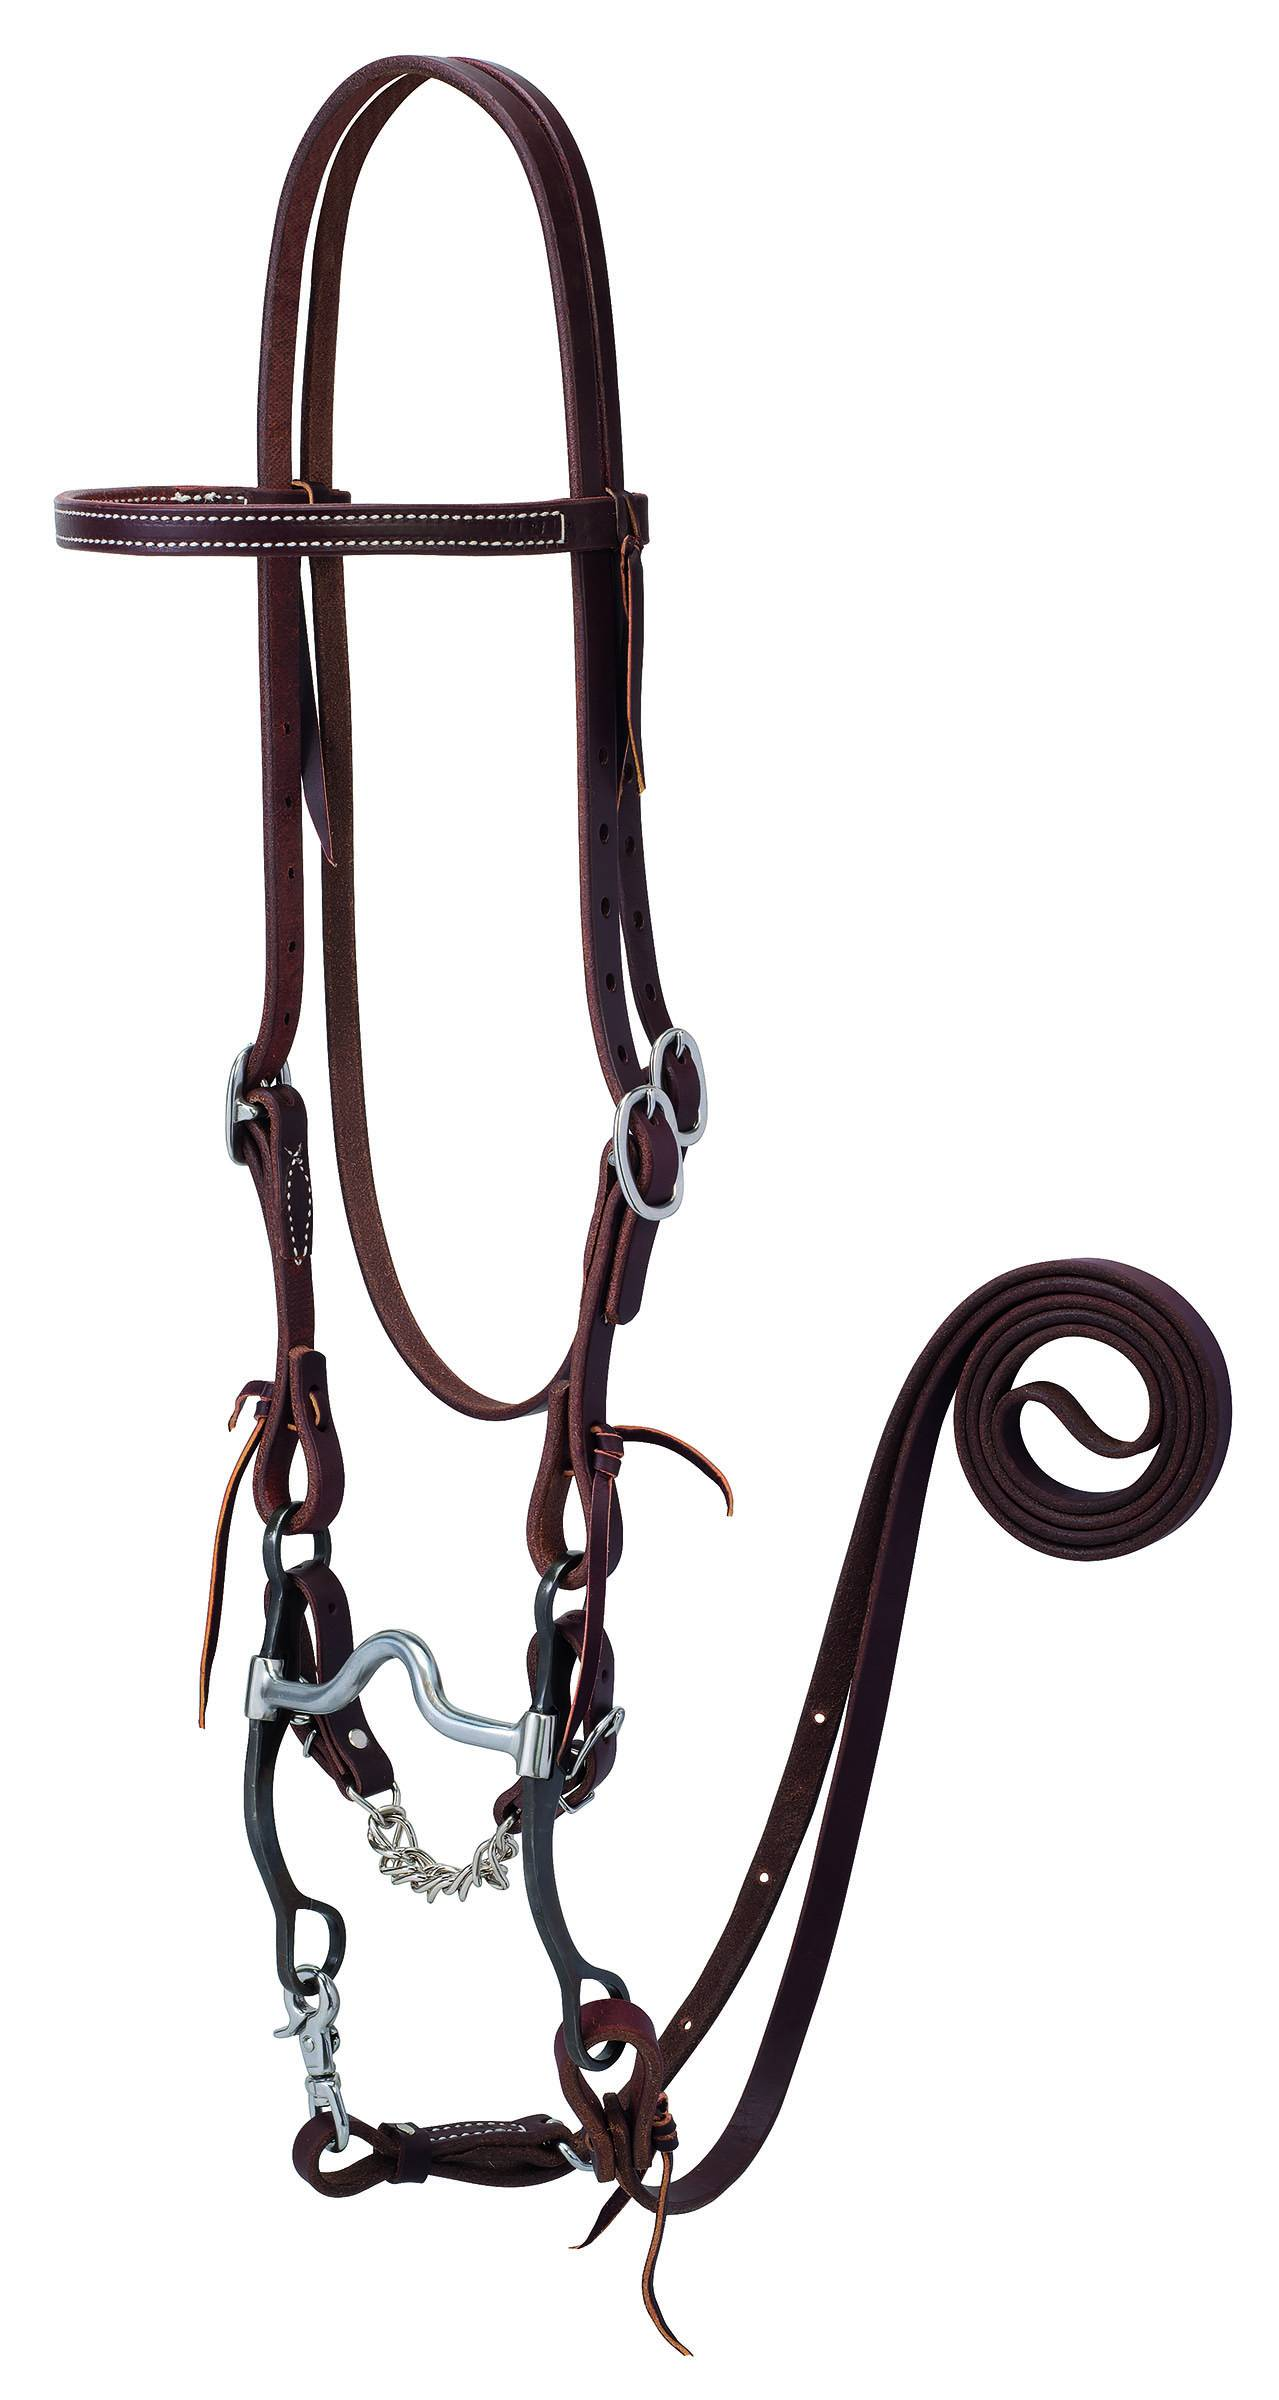 Weaver Working Tack Bridle With Medium Port Mouth Bit